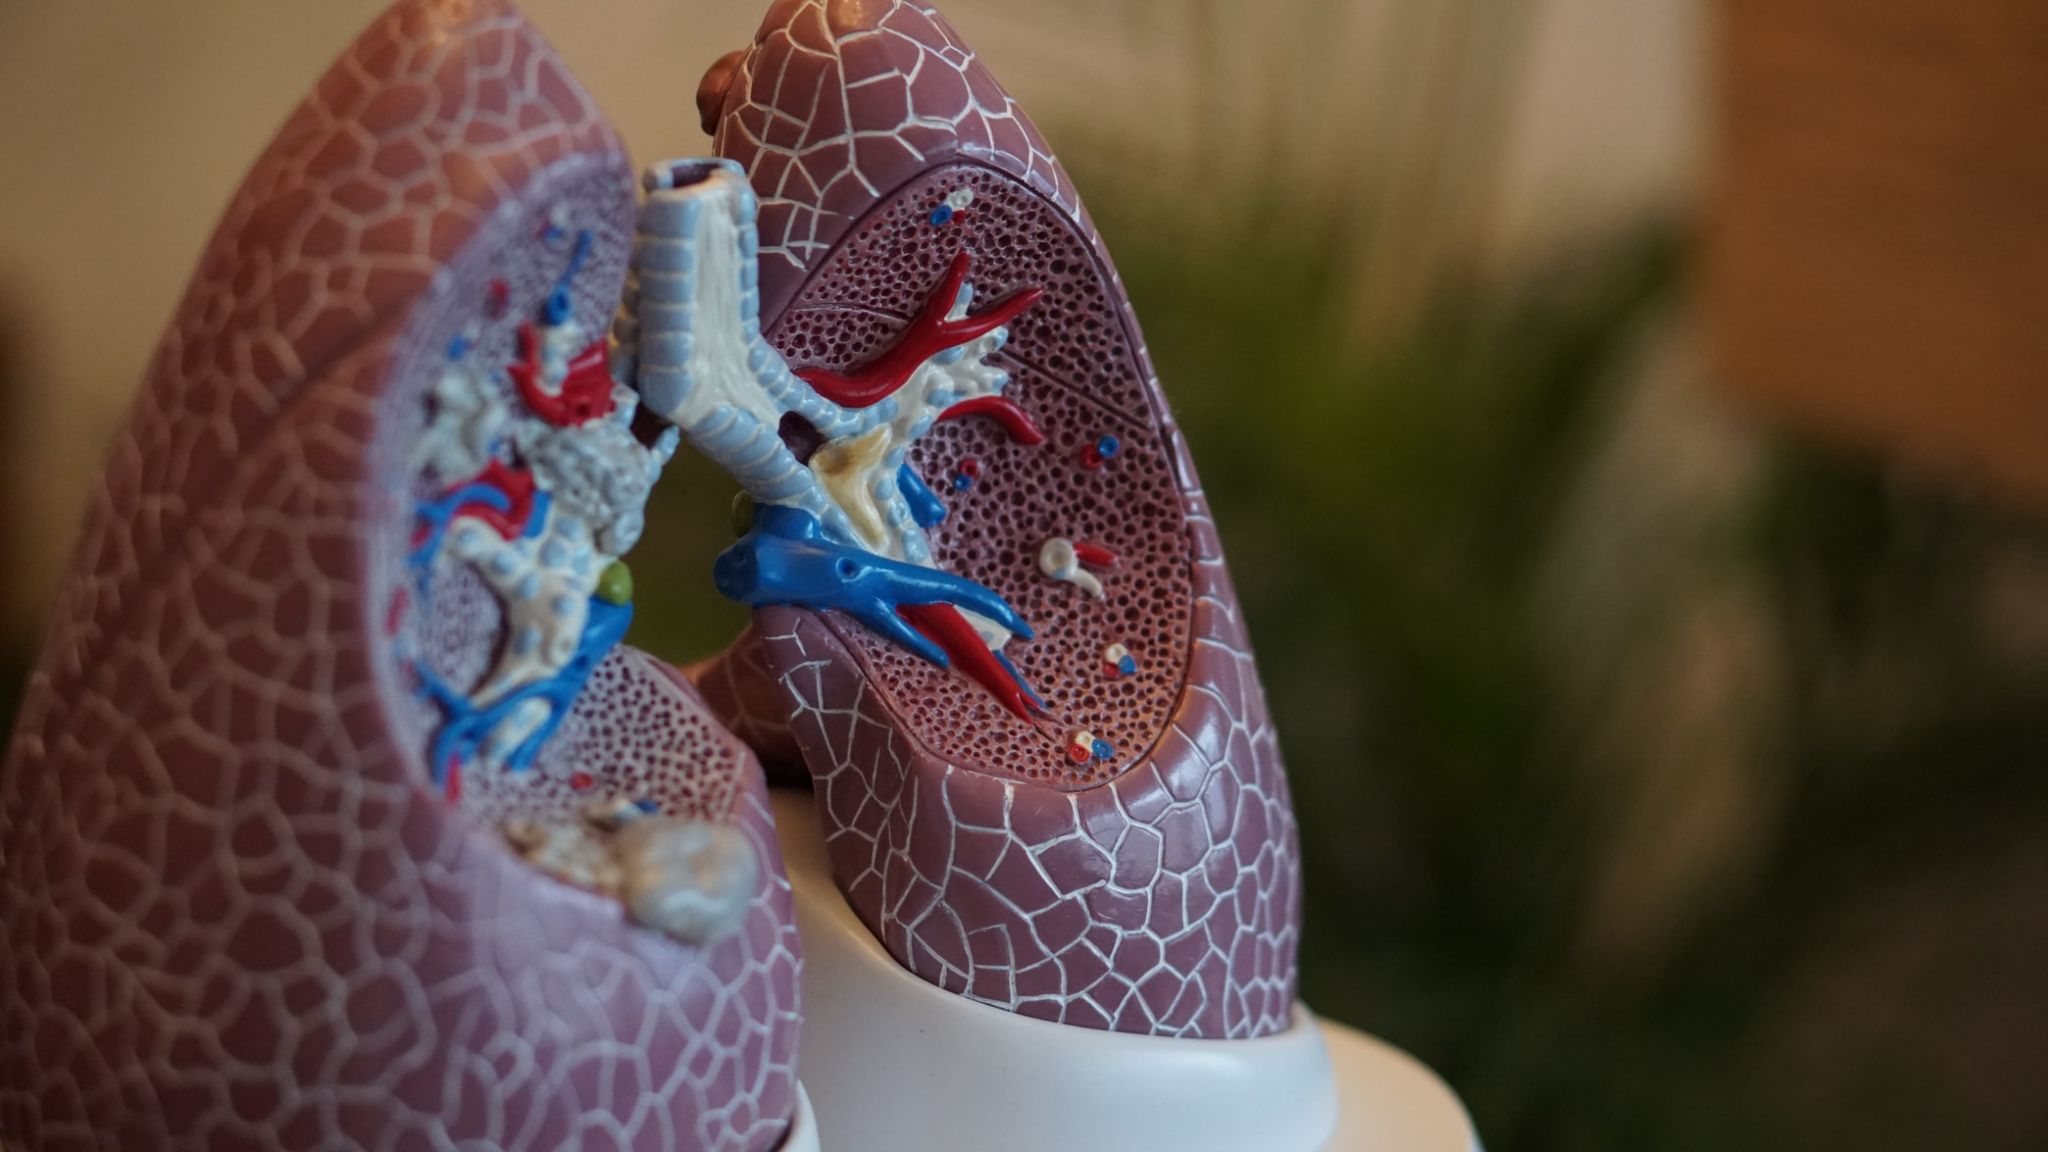 A model of healthy lungs